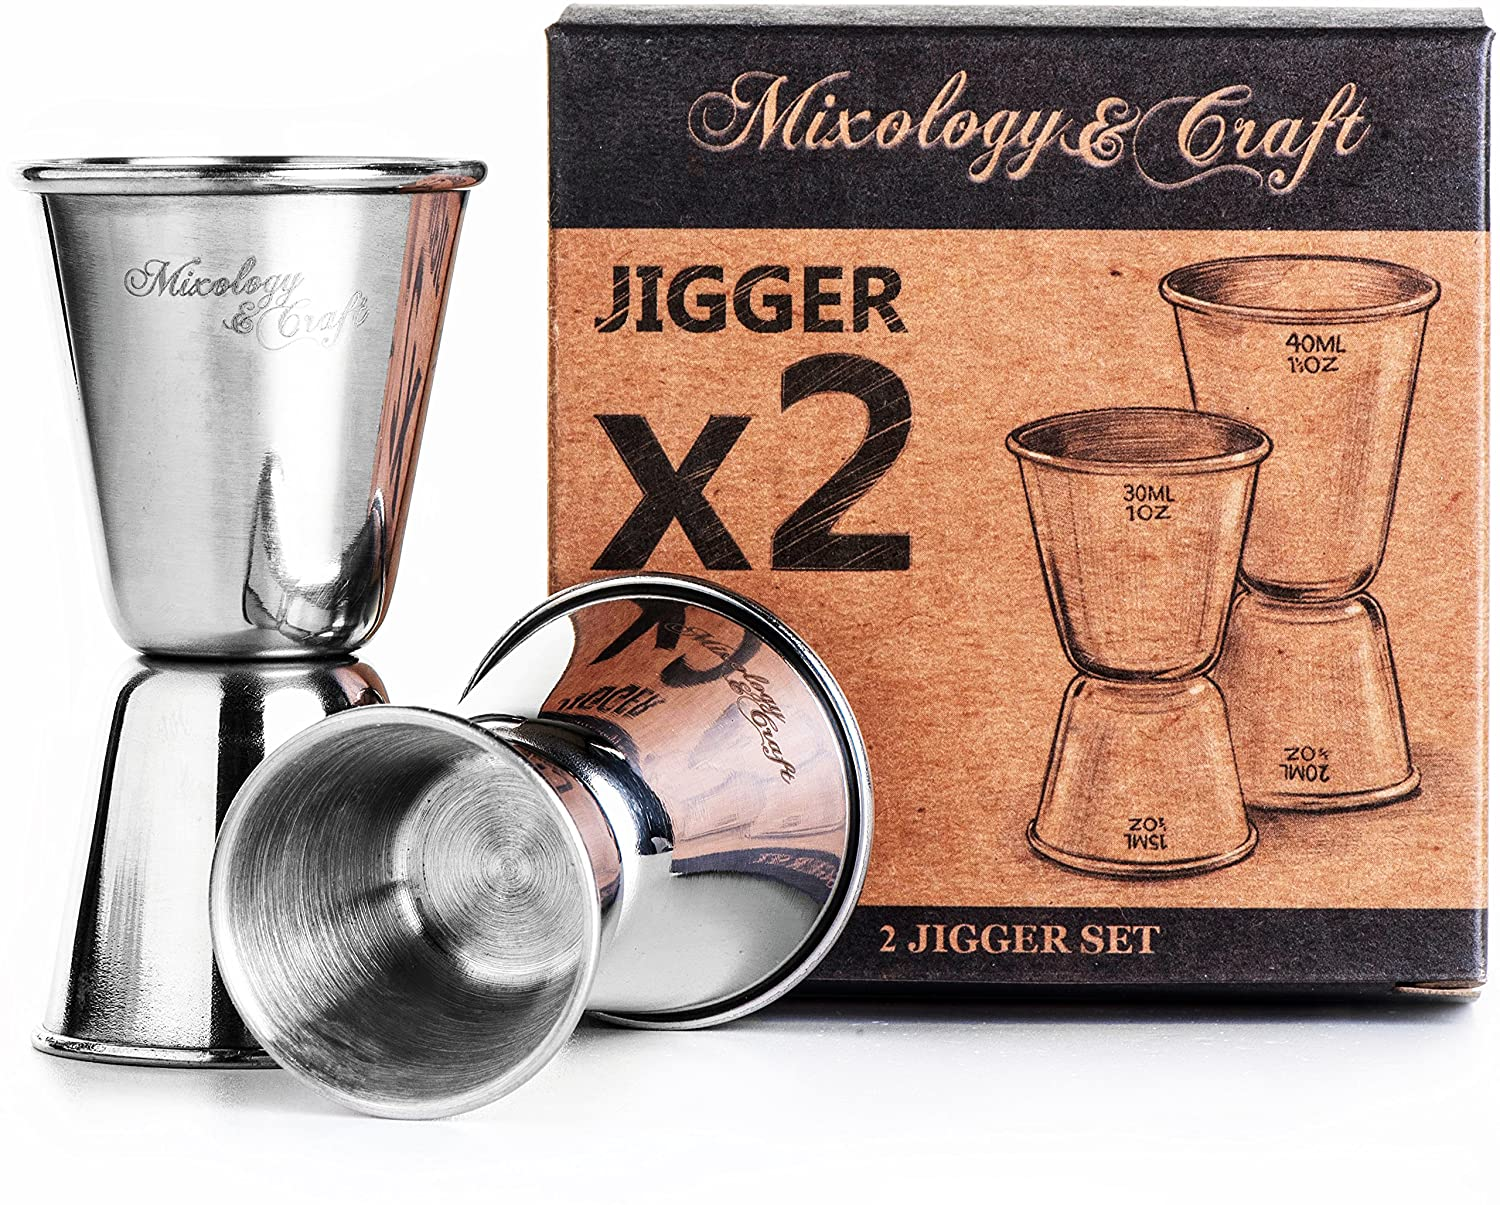 Double Jigger Set by Mixology&Craft - Professional Grade Bar Tool Accessories, Two Stainless Steel Cocktail Jiggers Holds ½ oz to 1⅓ oz - Measure Liquor with Confidence Like a Professional Bartender